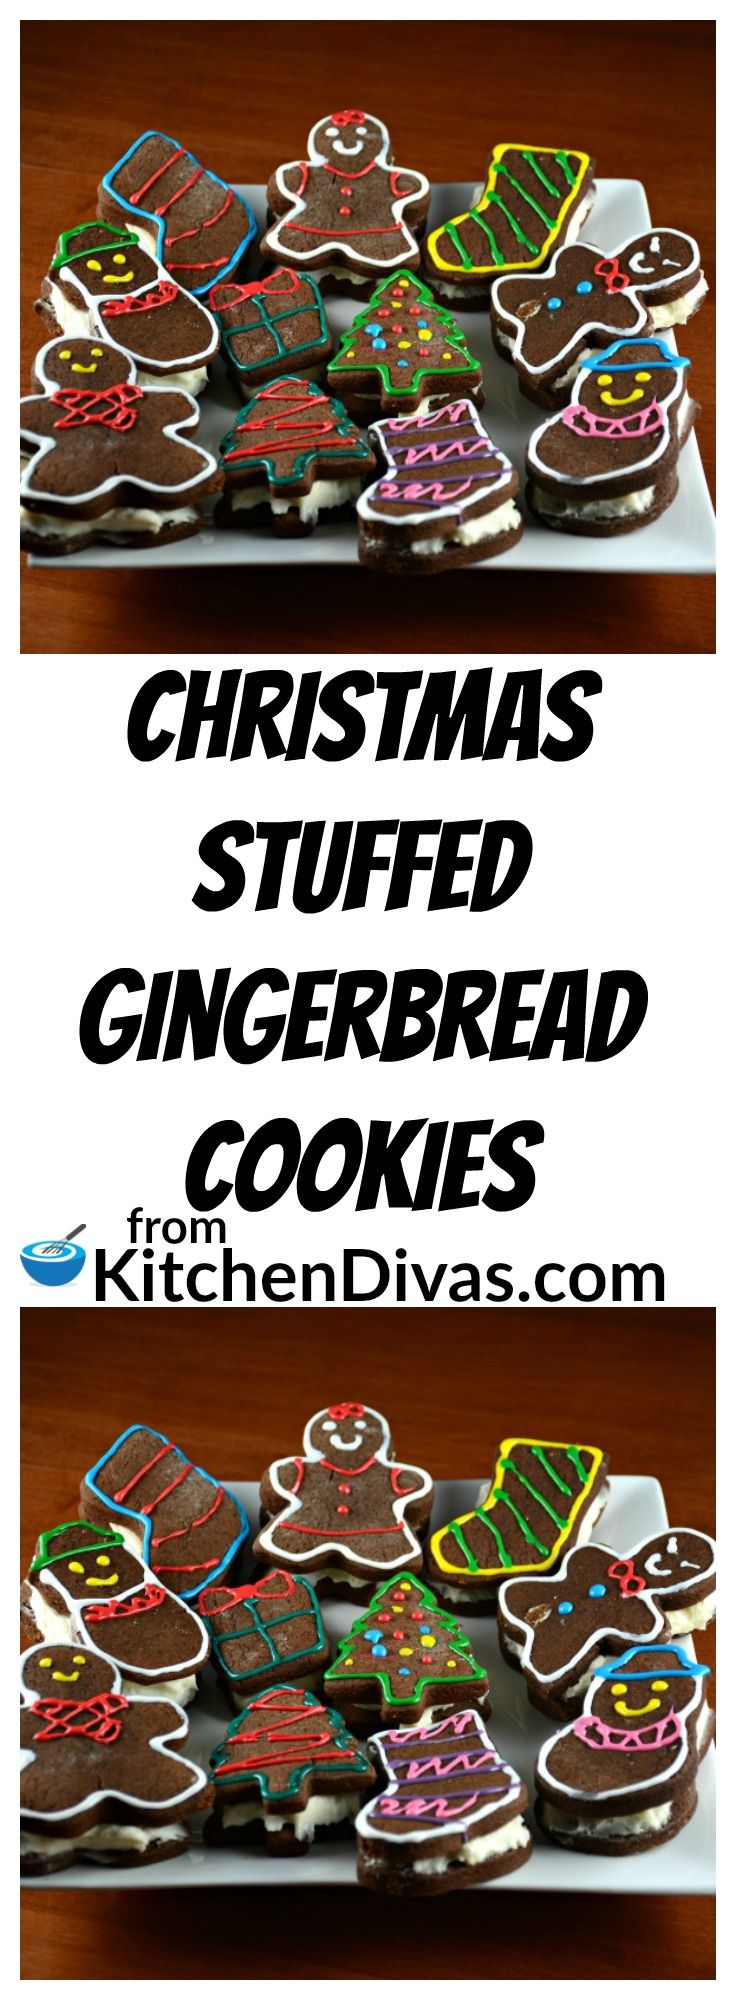 These are our favorite Christmas cookie. The creamy stuffing in these cookies is so yummy! Decorating them is also a lot of fun! The possibilities are endless!